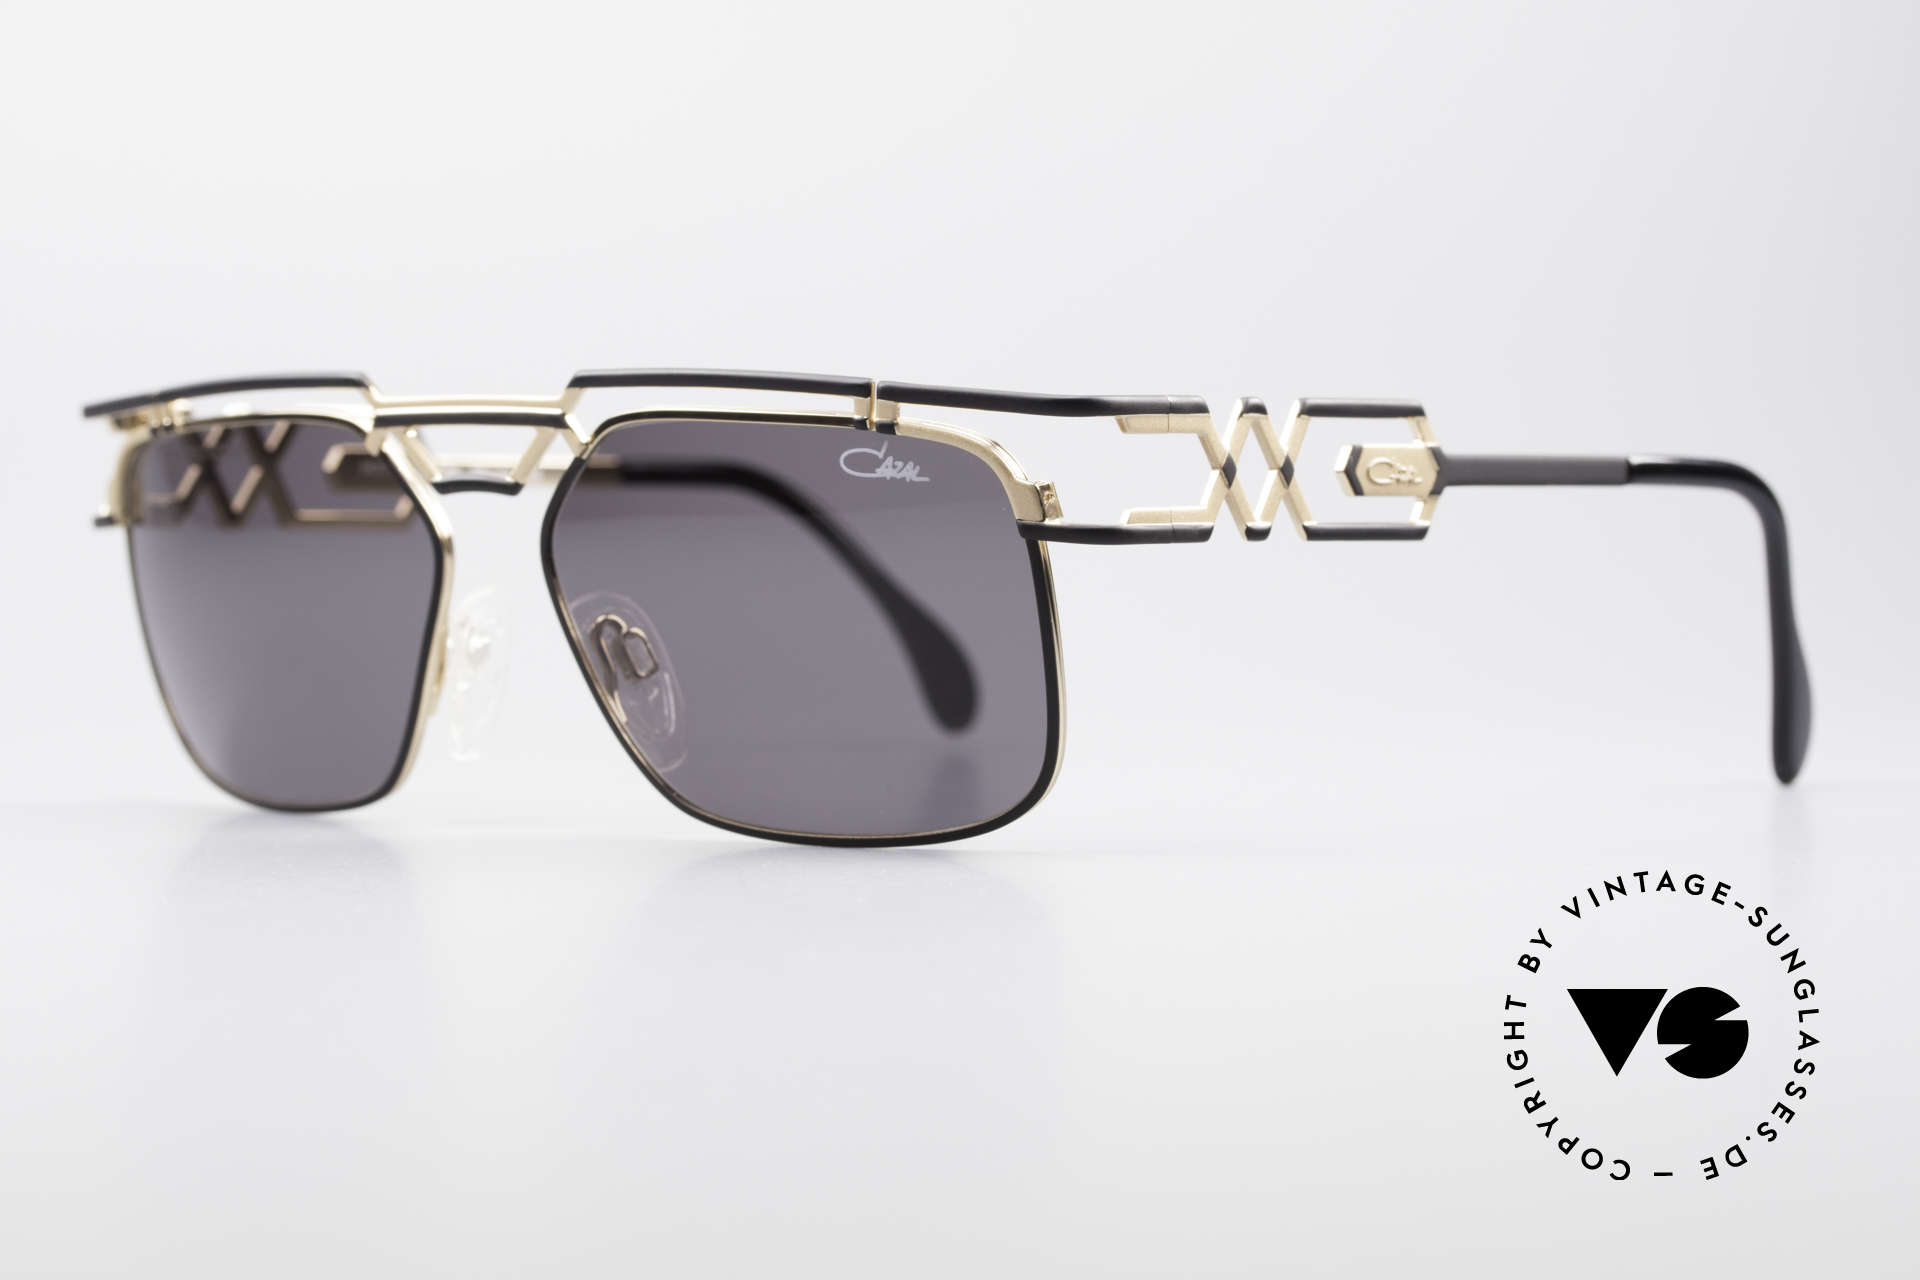 Cazal 973 90's Sunglasses Ladies Gents, elegant and interesting coloring / pattern (black - gold), Made for Men and Women